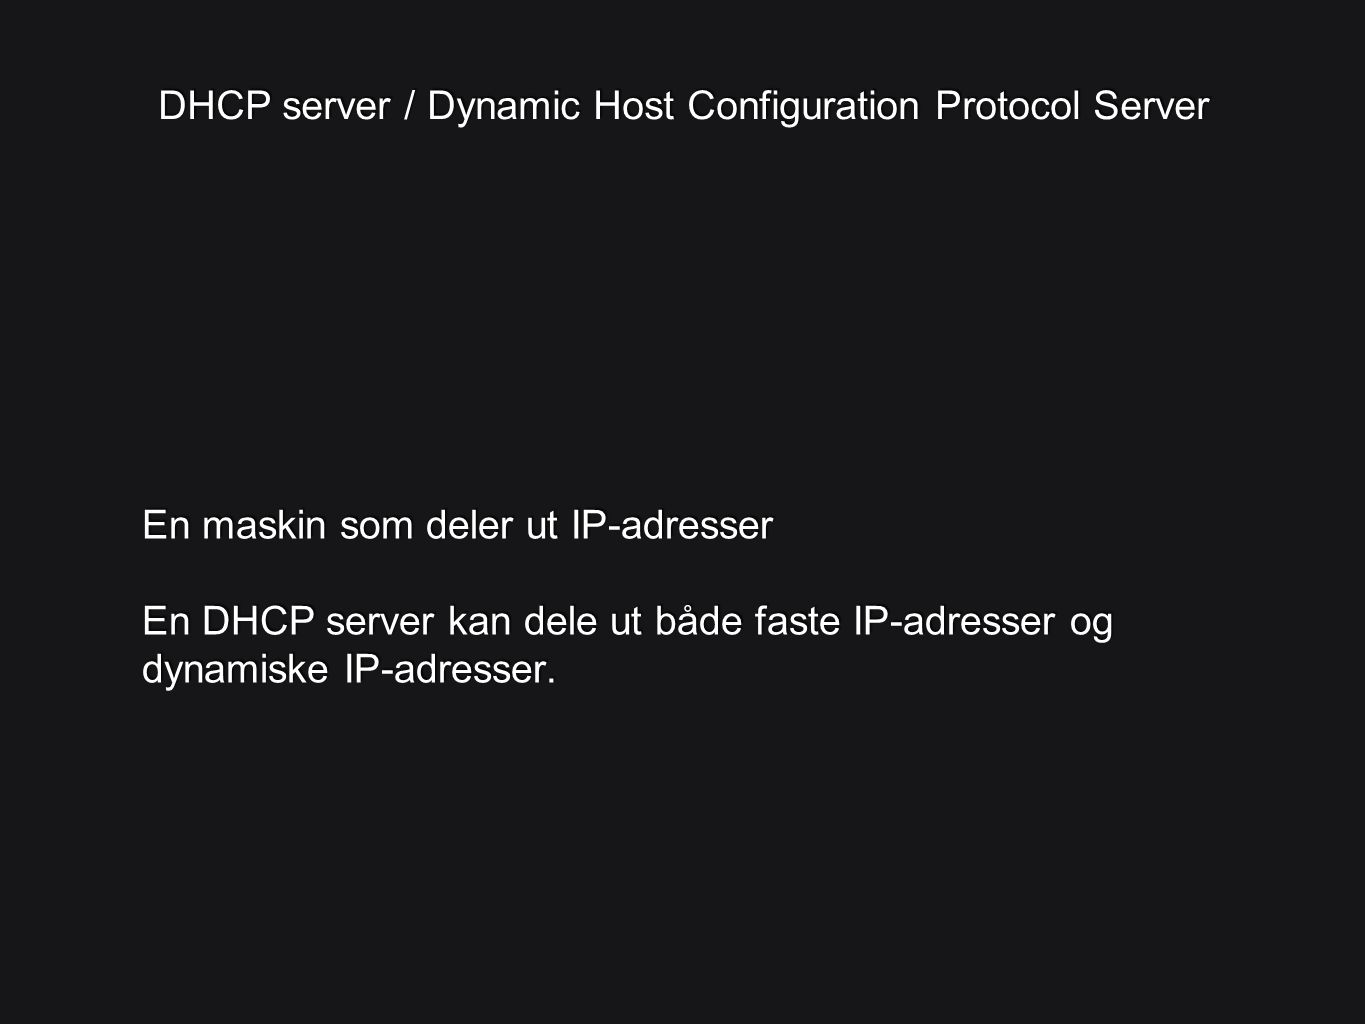 DHCP server / Dynamic Host Configuration Protocol Server